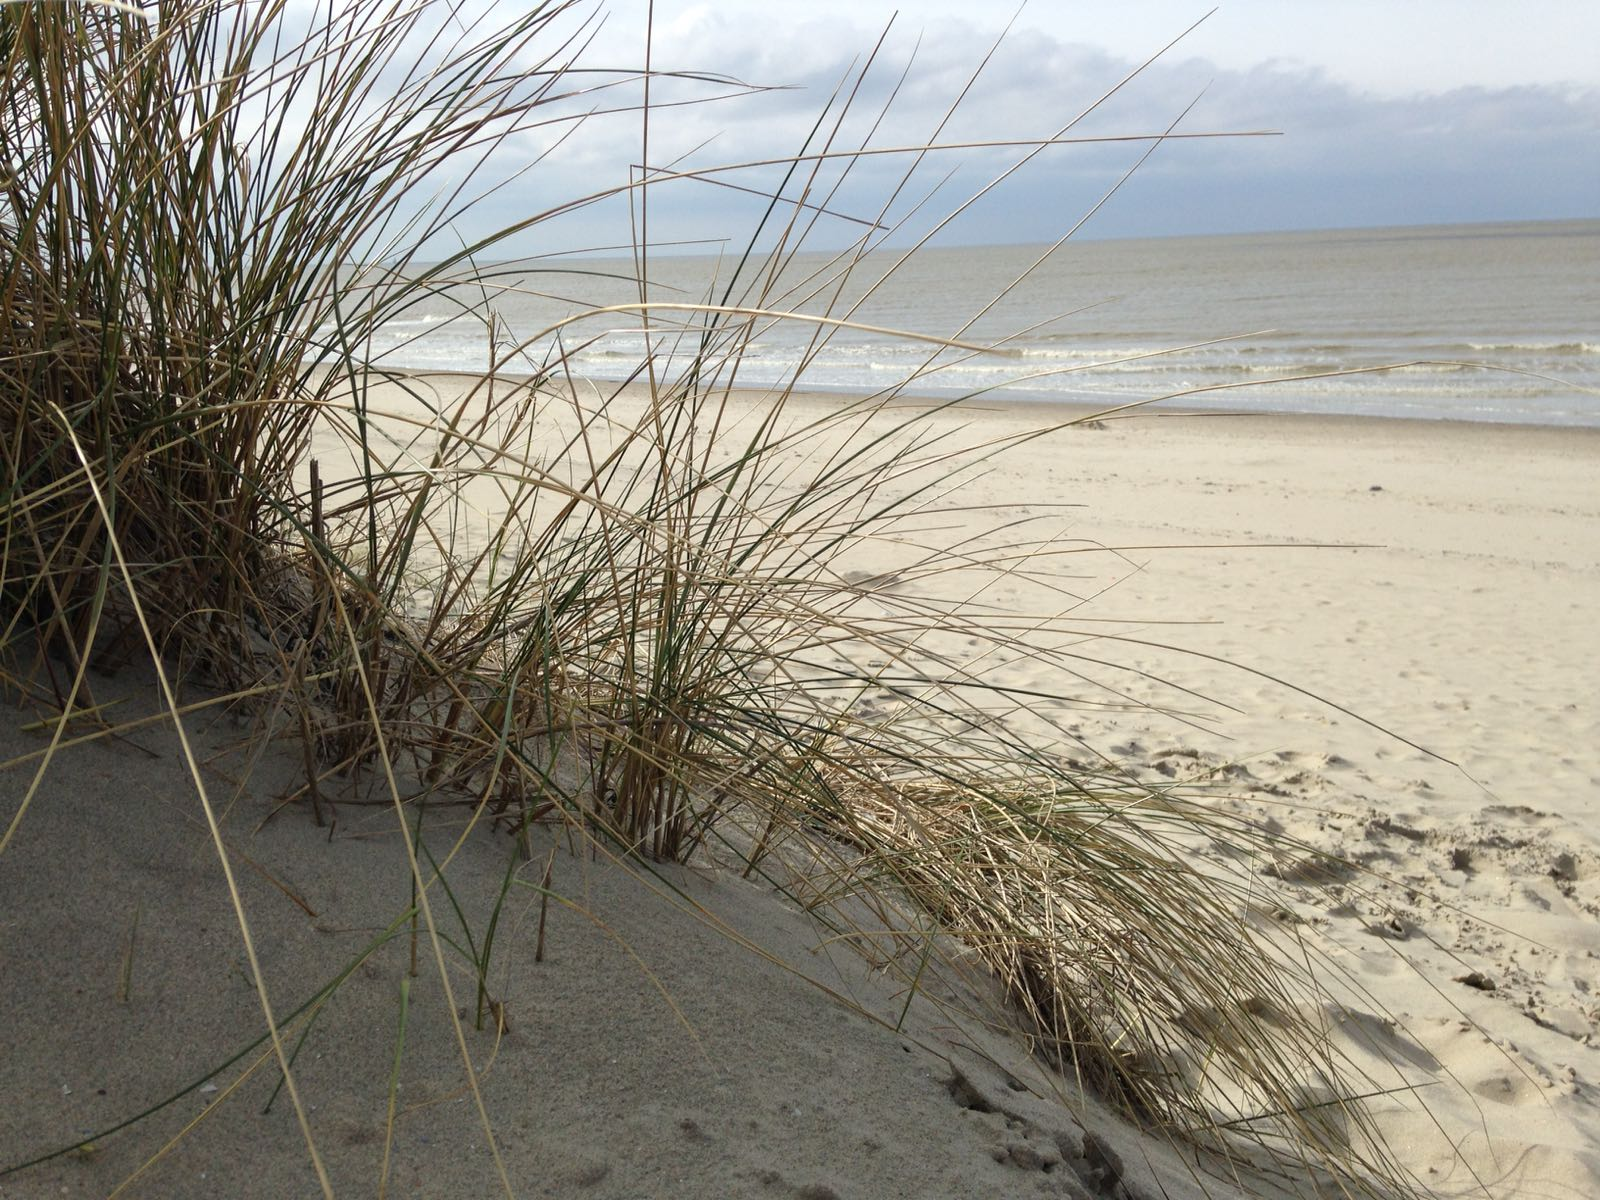 http://www.nordsee-chalet.com/wp-content/uploads/2017/03/IMG-20170218-WA0026.jpg